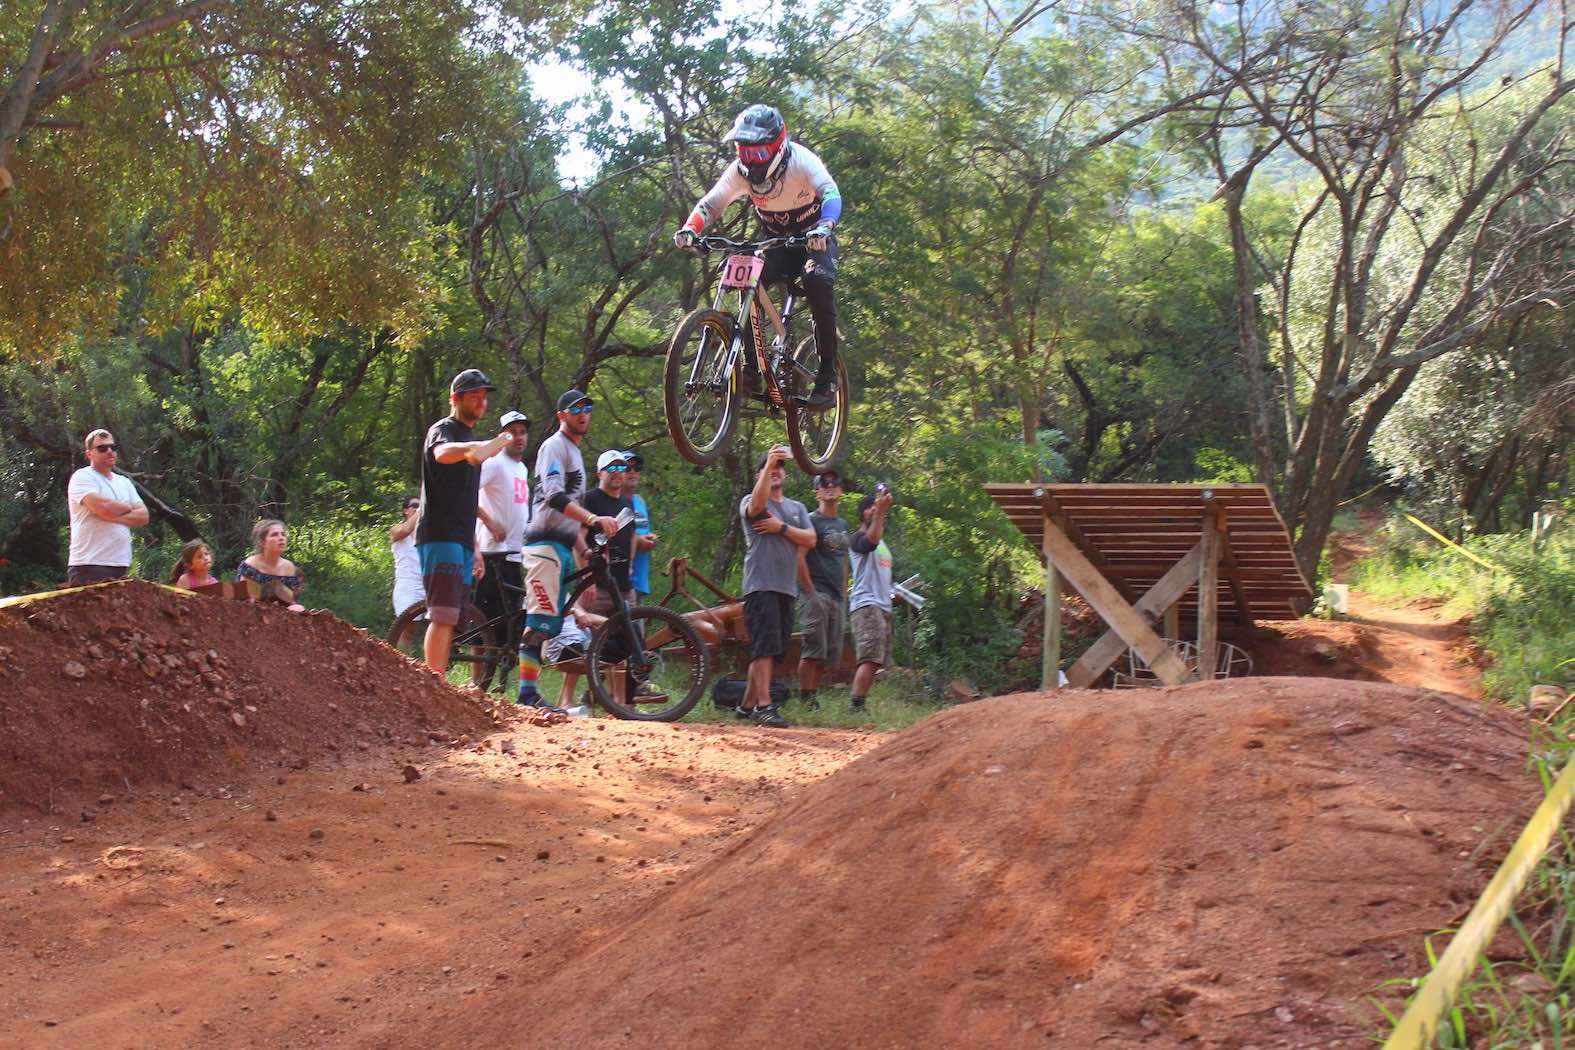 Results from the 2018 SA Downhill MTB Championships